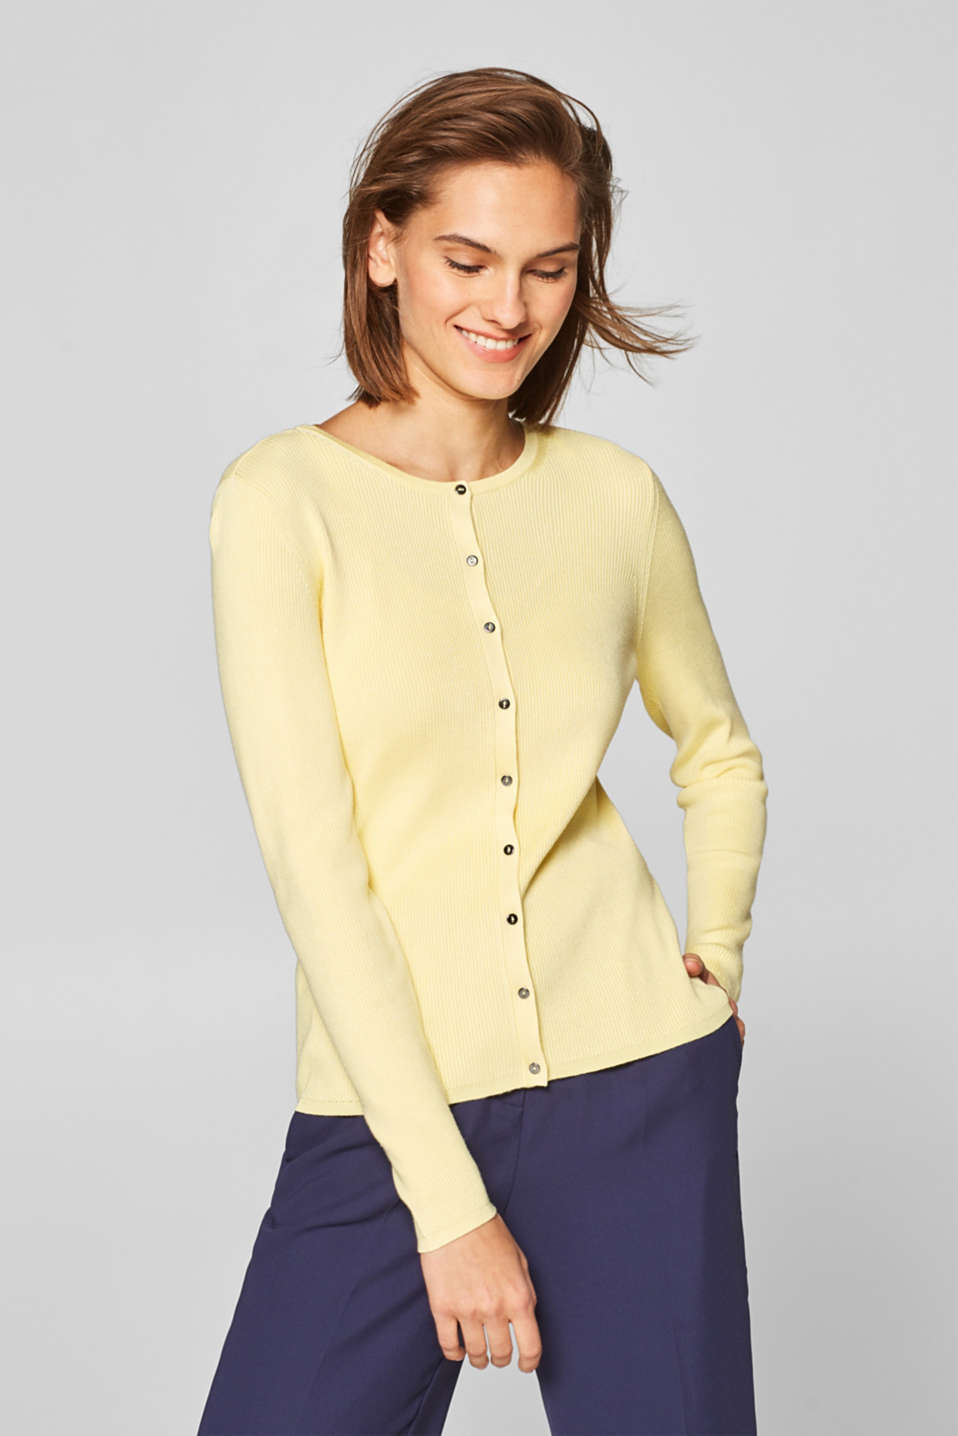 Esprit - Stretchcardigan i ribstrik